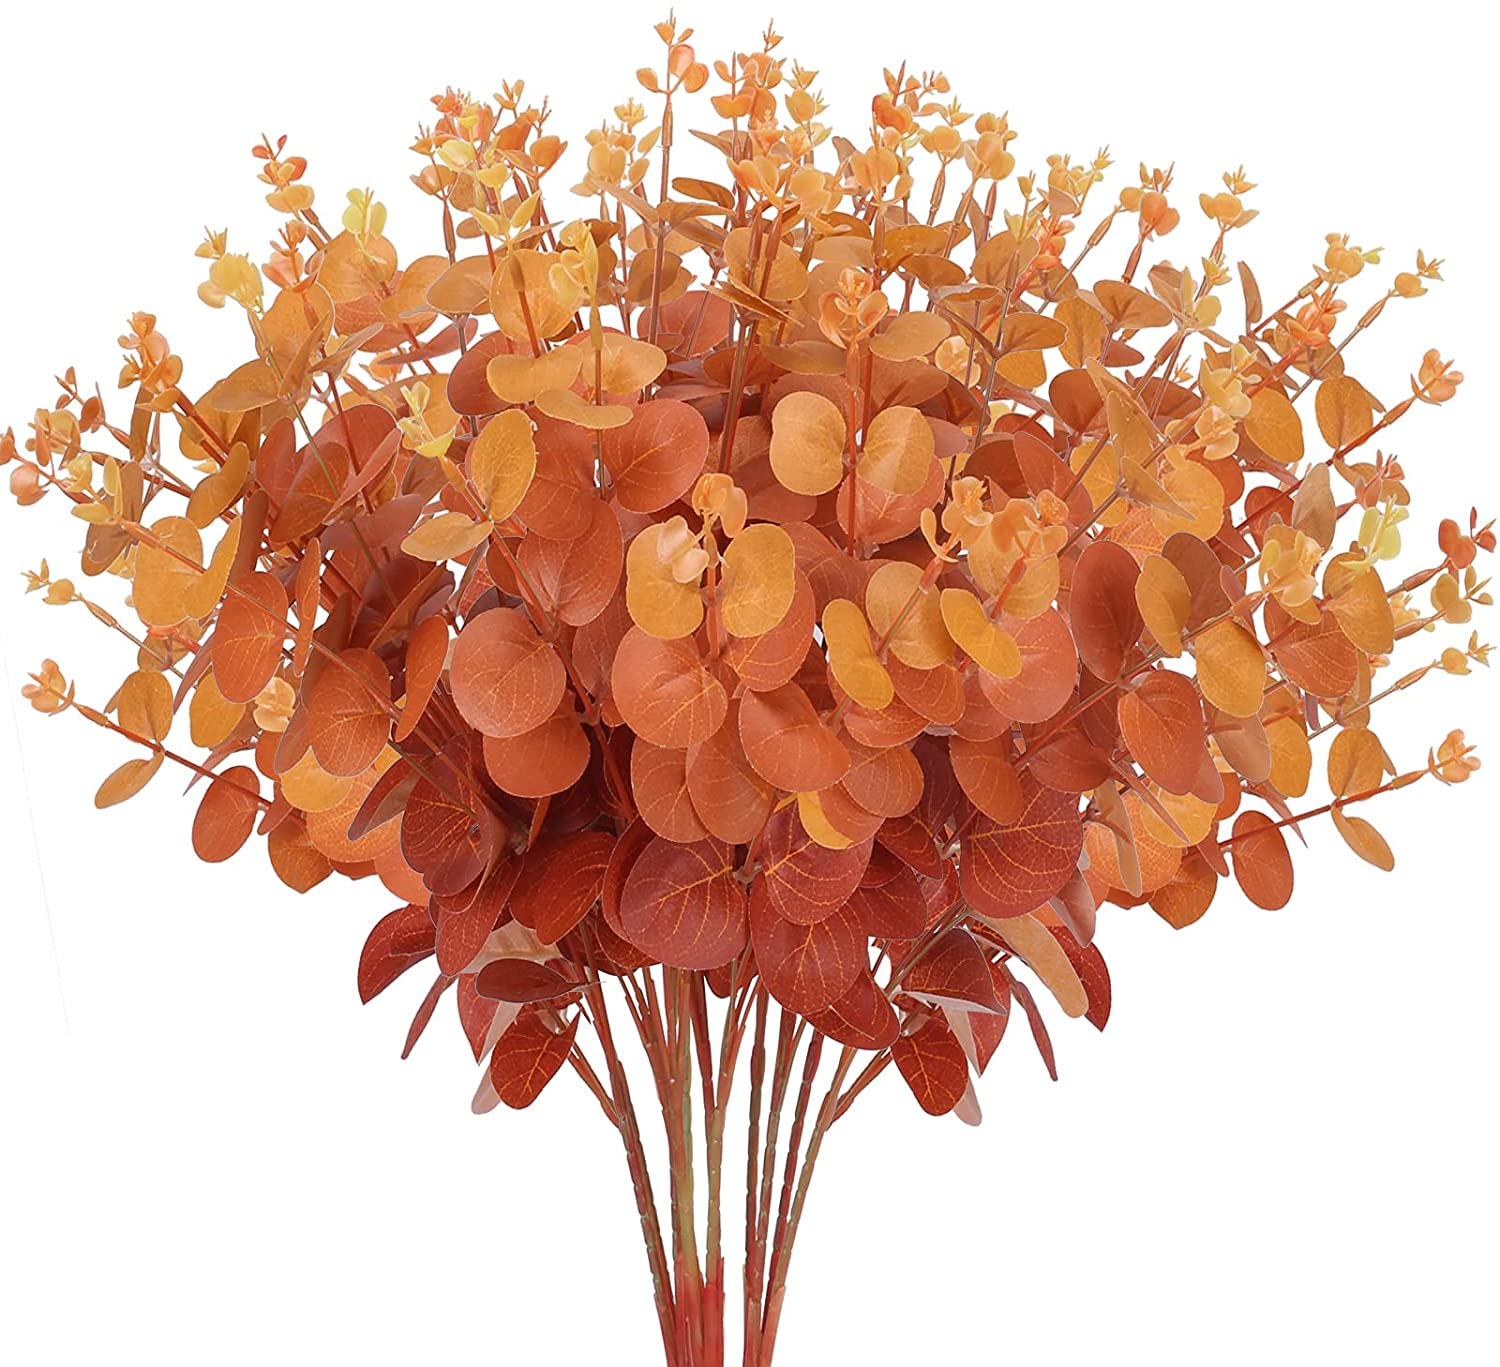 HUAESIN 3Pcs Artificial Eucalyptus Leaves Branches Fake Fall Eucalyptus Plant Faux Autumn Stems for Thanksgiving Halloween Wedding Dining Table Centerpieces Decor